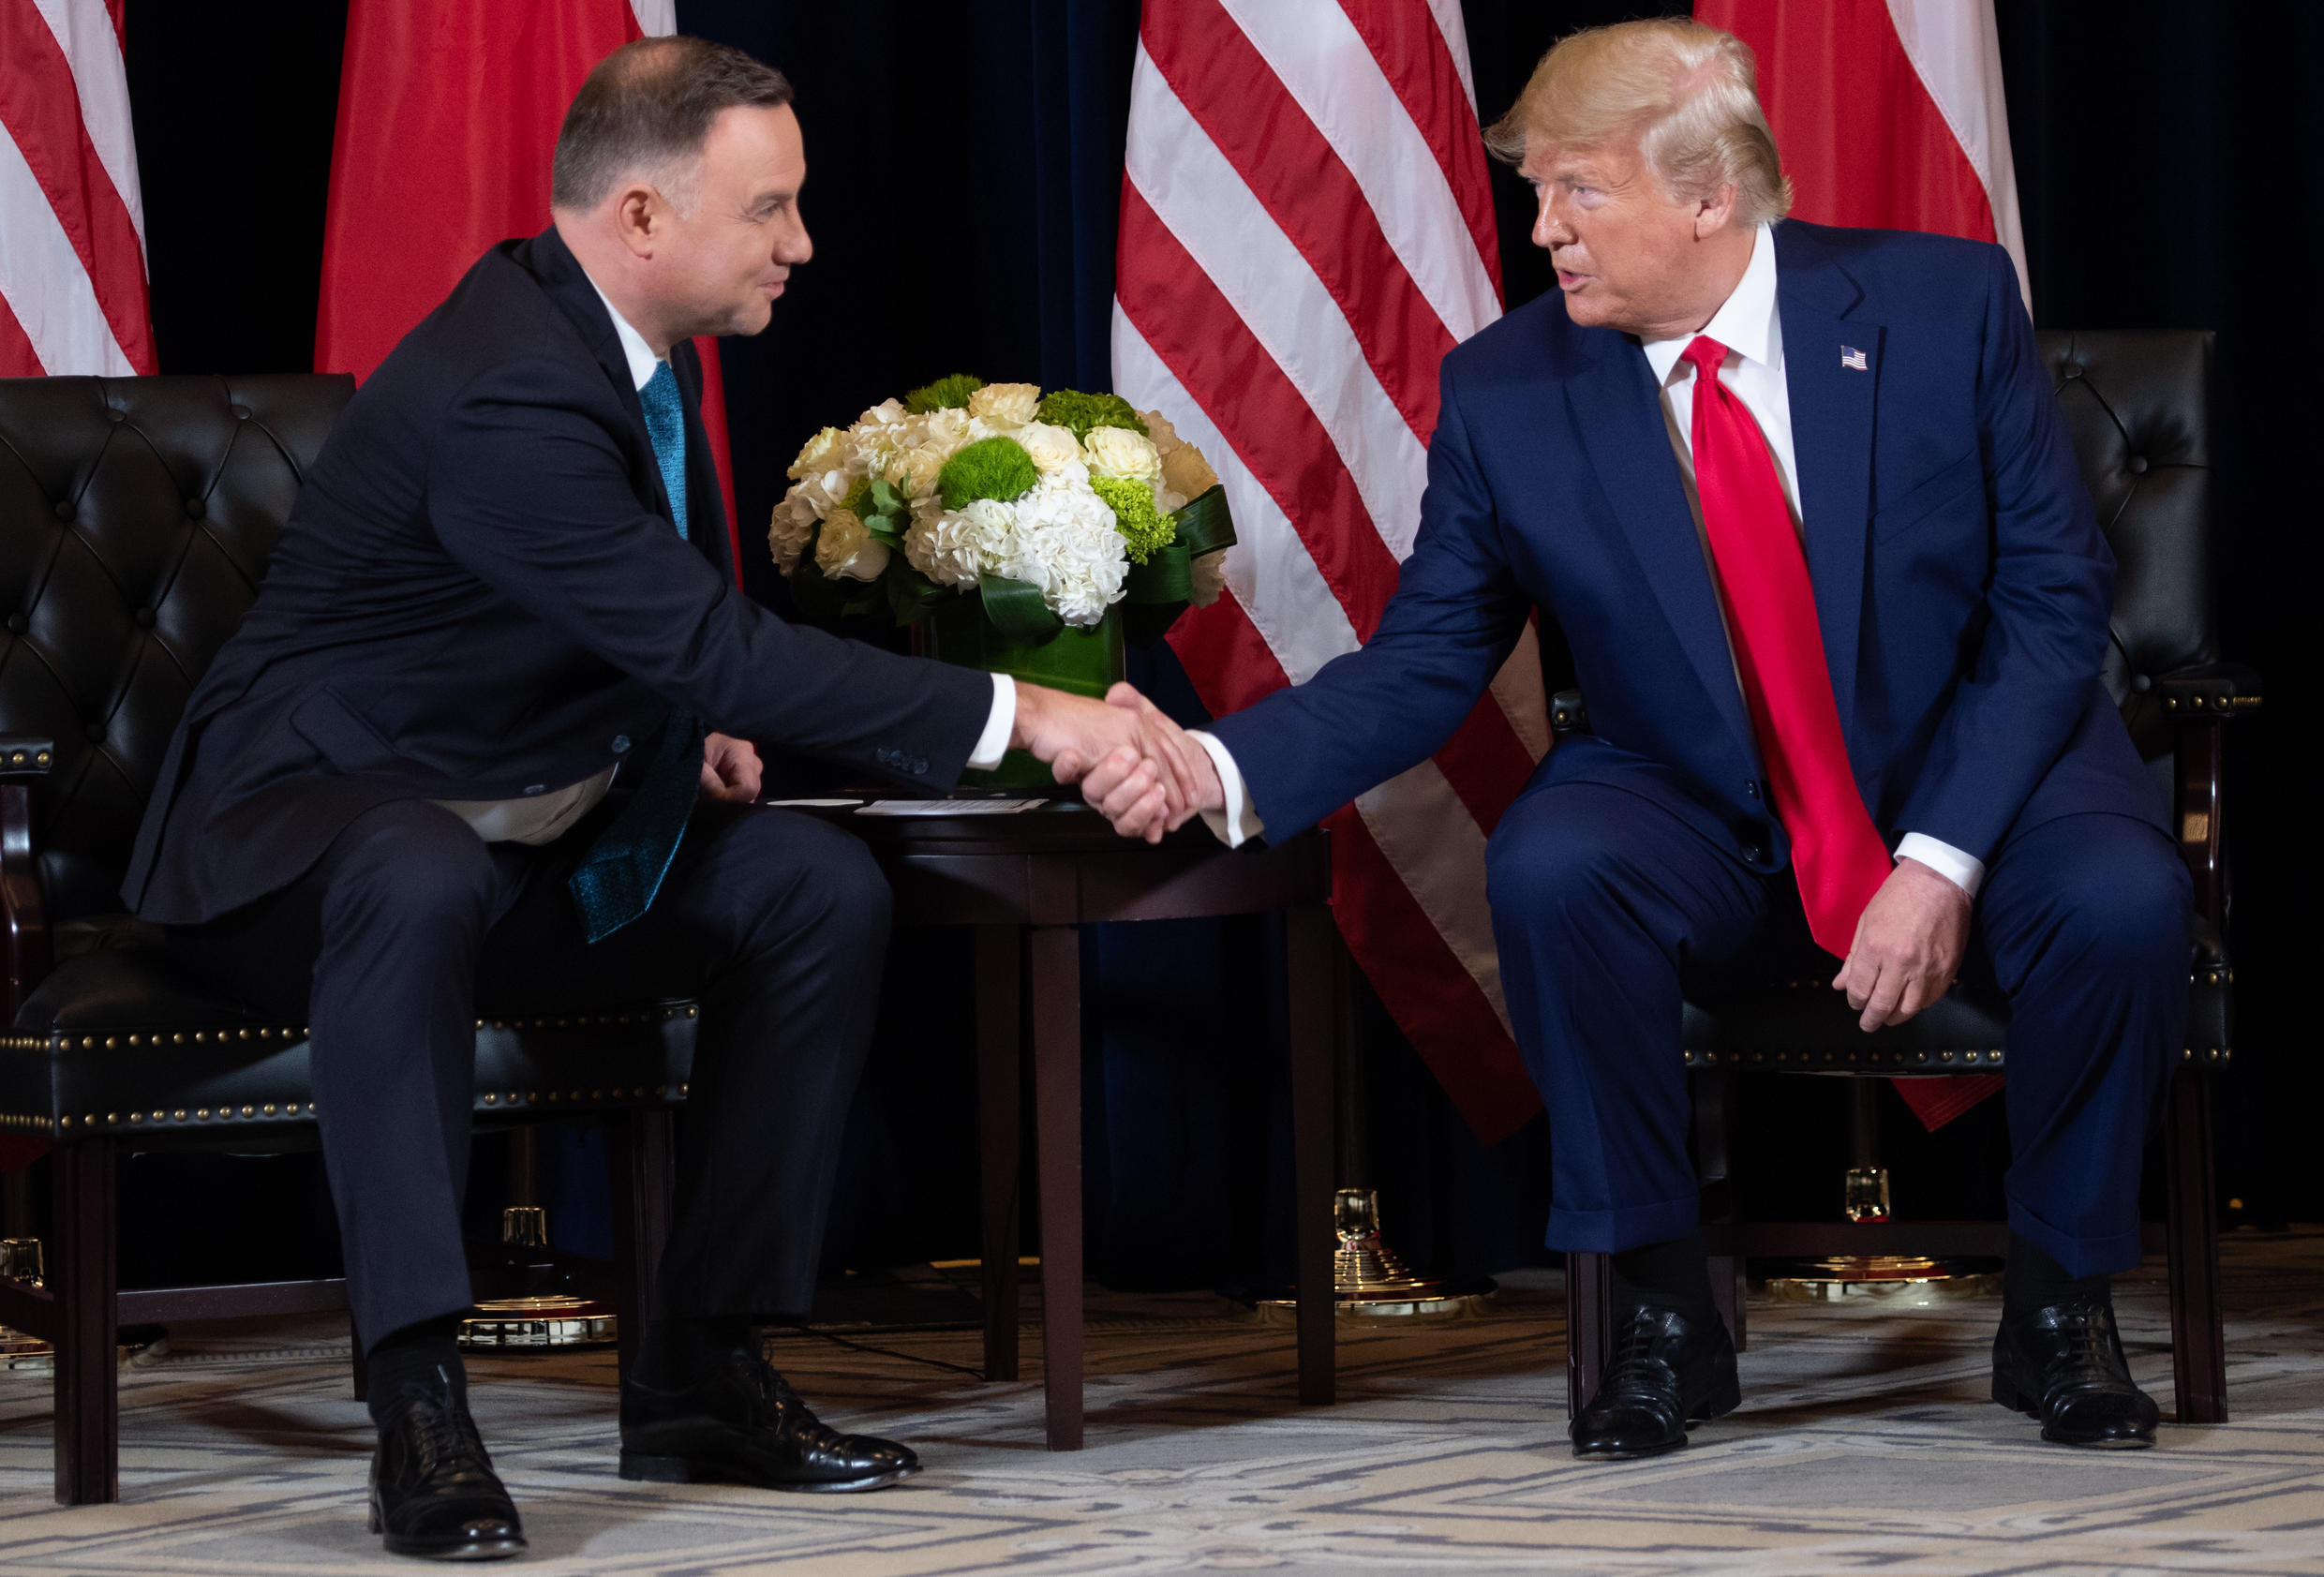 US President Trump shakes hands with Polish President Duda in New York in September 2019. Duda is visiting Washington four days before a crucial election in Poland